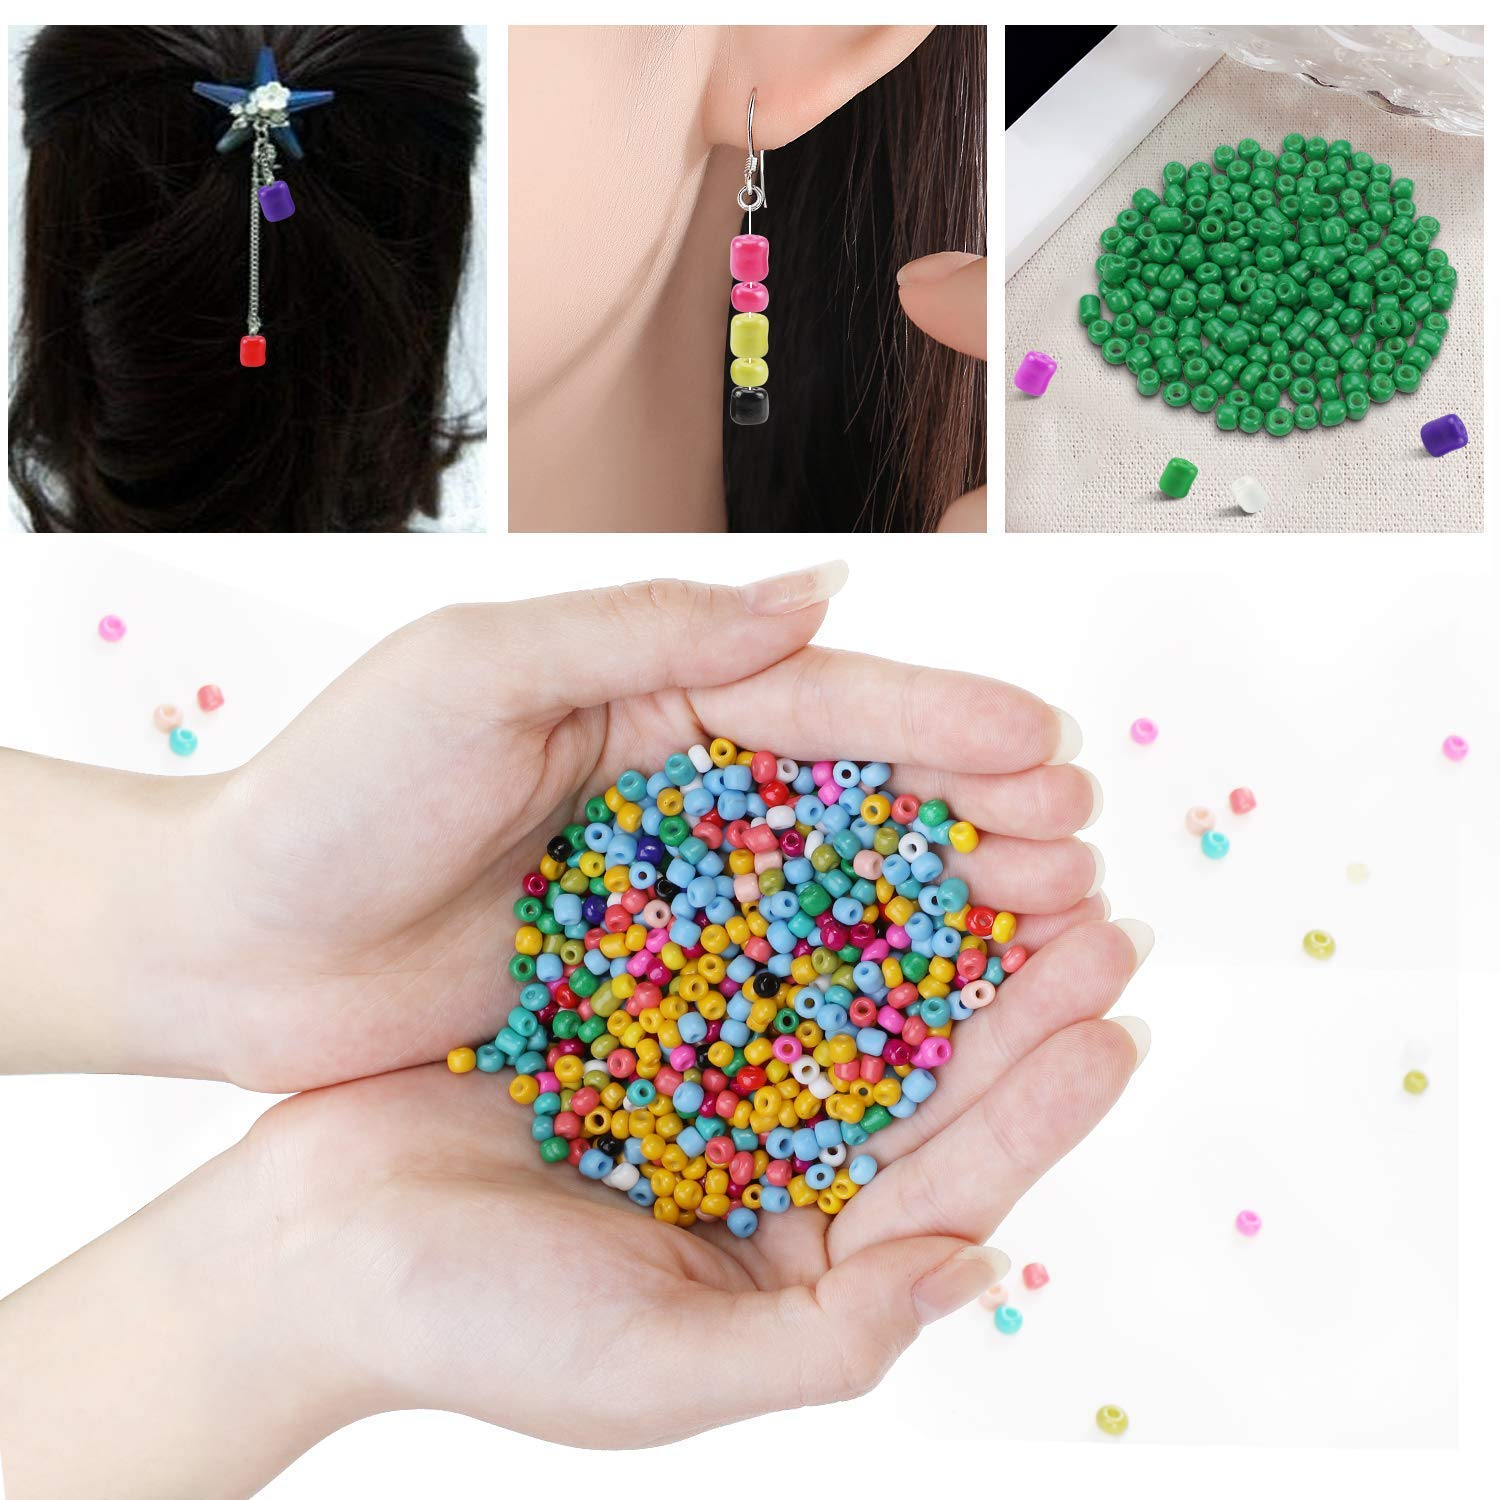 24 Colors Small Pony Beads Assorted Kit Opaque Colors Lustered Loose Spacer Beads DIY Crafting 2mm Round Hole 0.6mm for Jewelry Making Phogary 24000pcs Glass Seed Beads